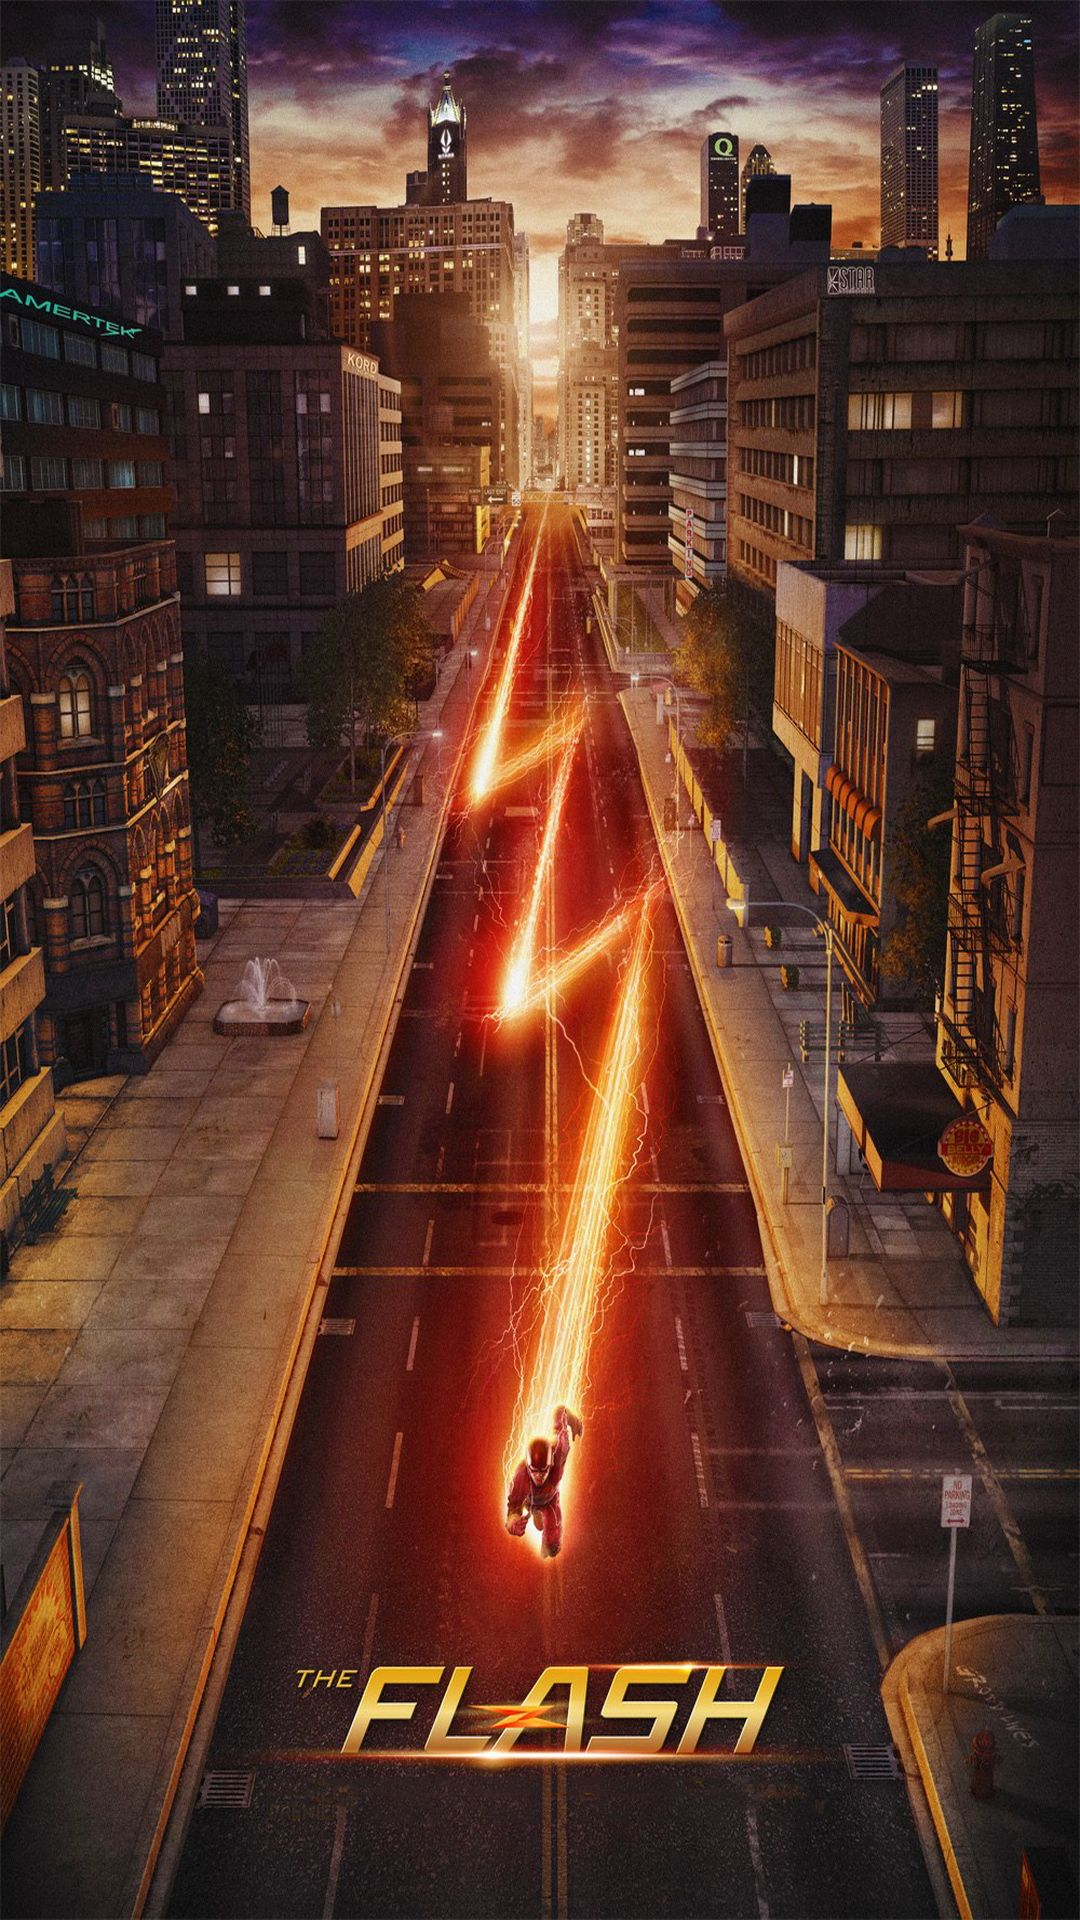 the flash five best moments from season one - hd wallpapers | the